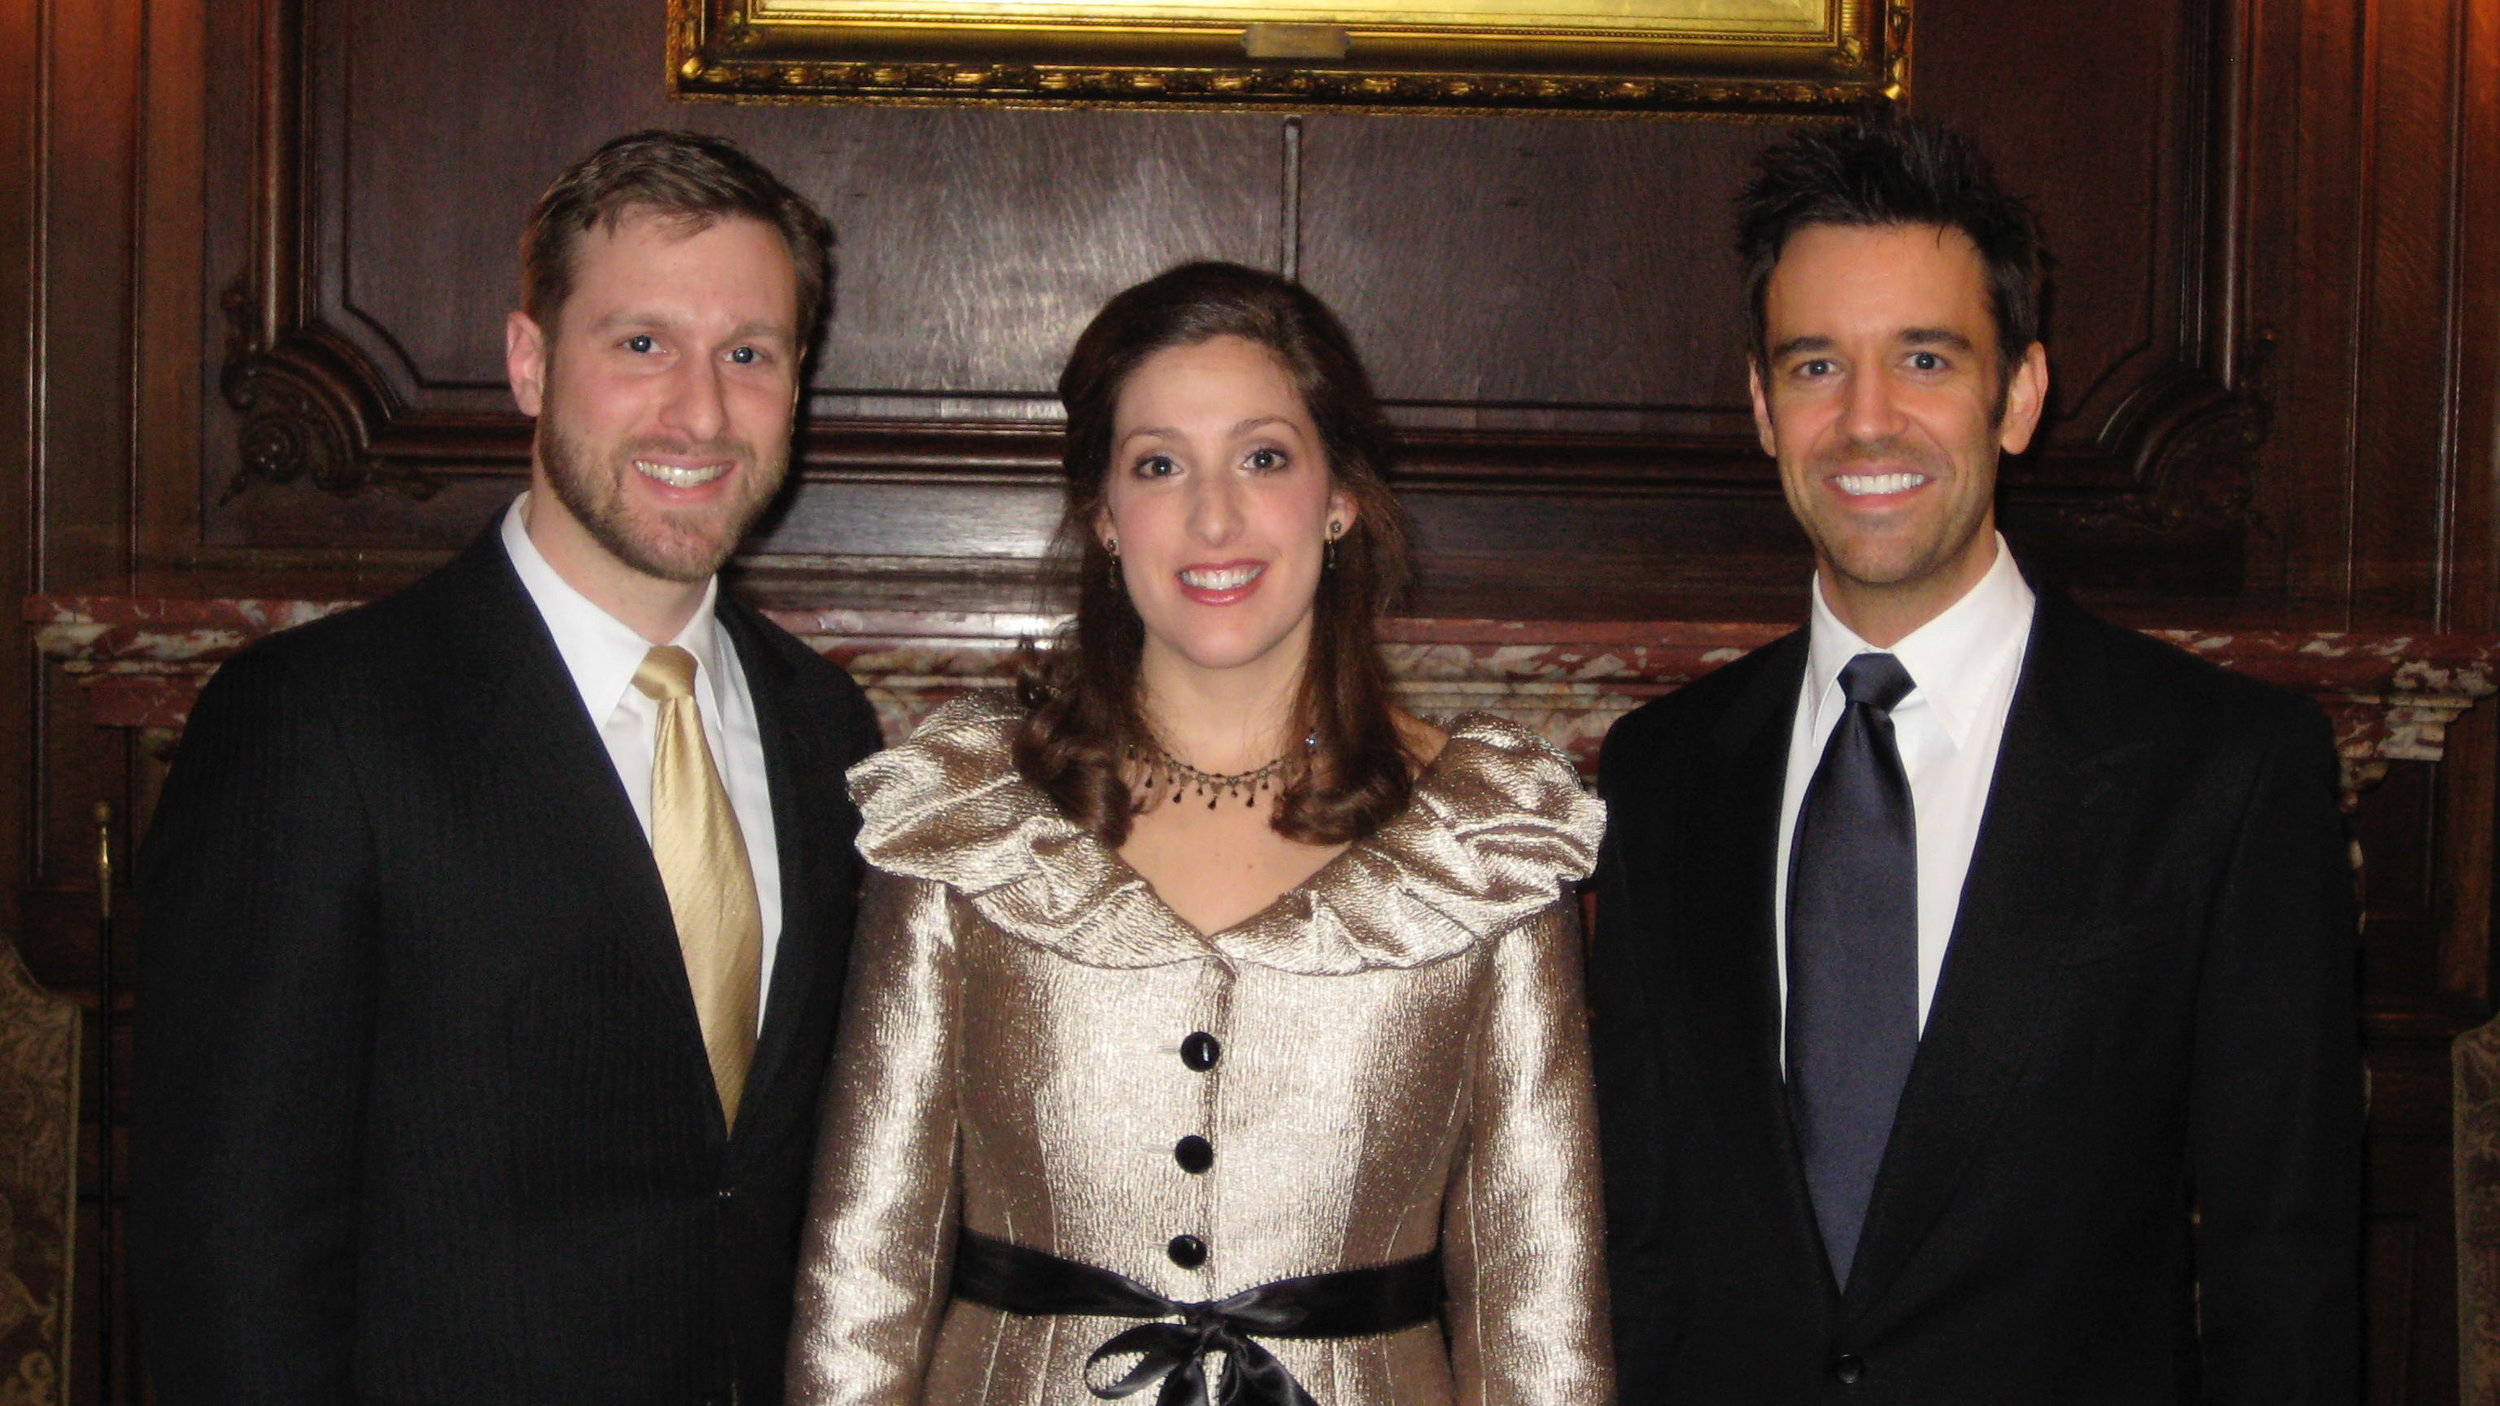 with baritone Jesse Blumberg and pianist Cameron Stowe (The Harbor Trio)